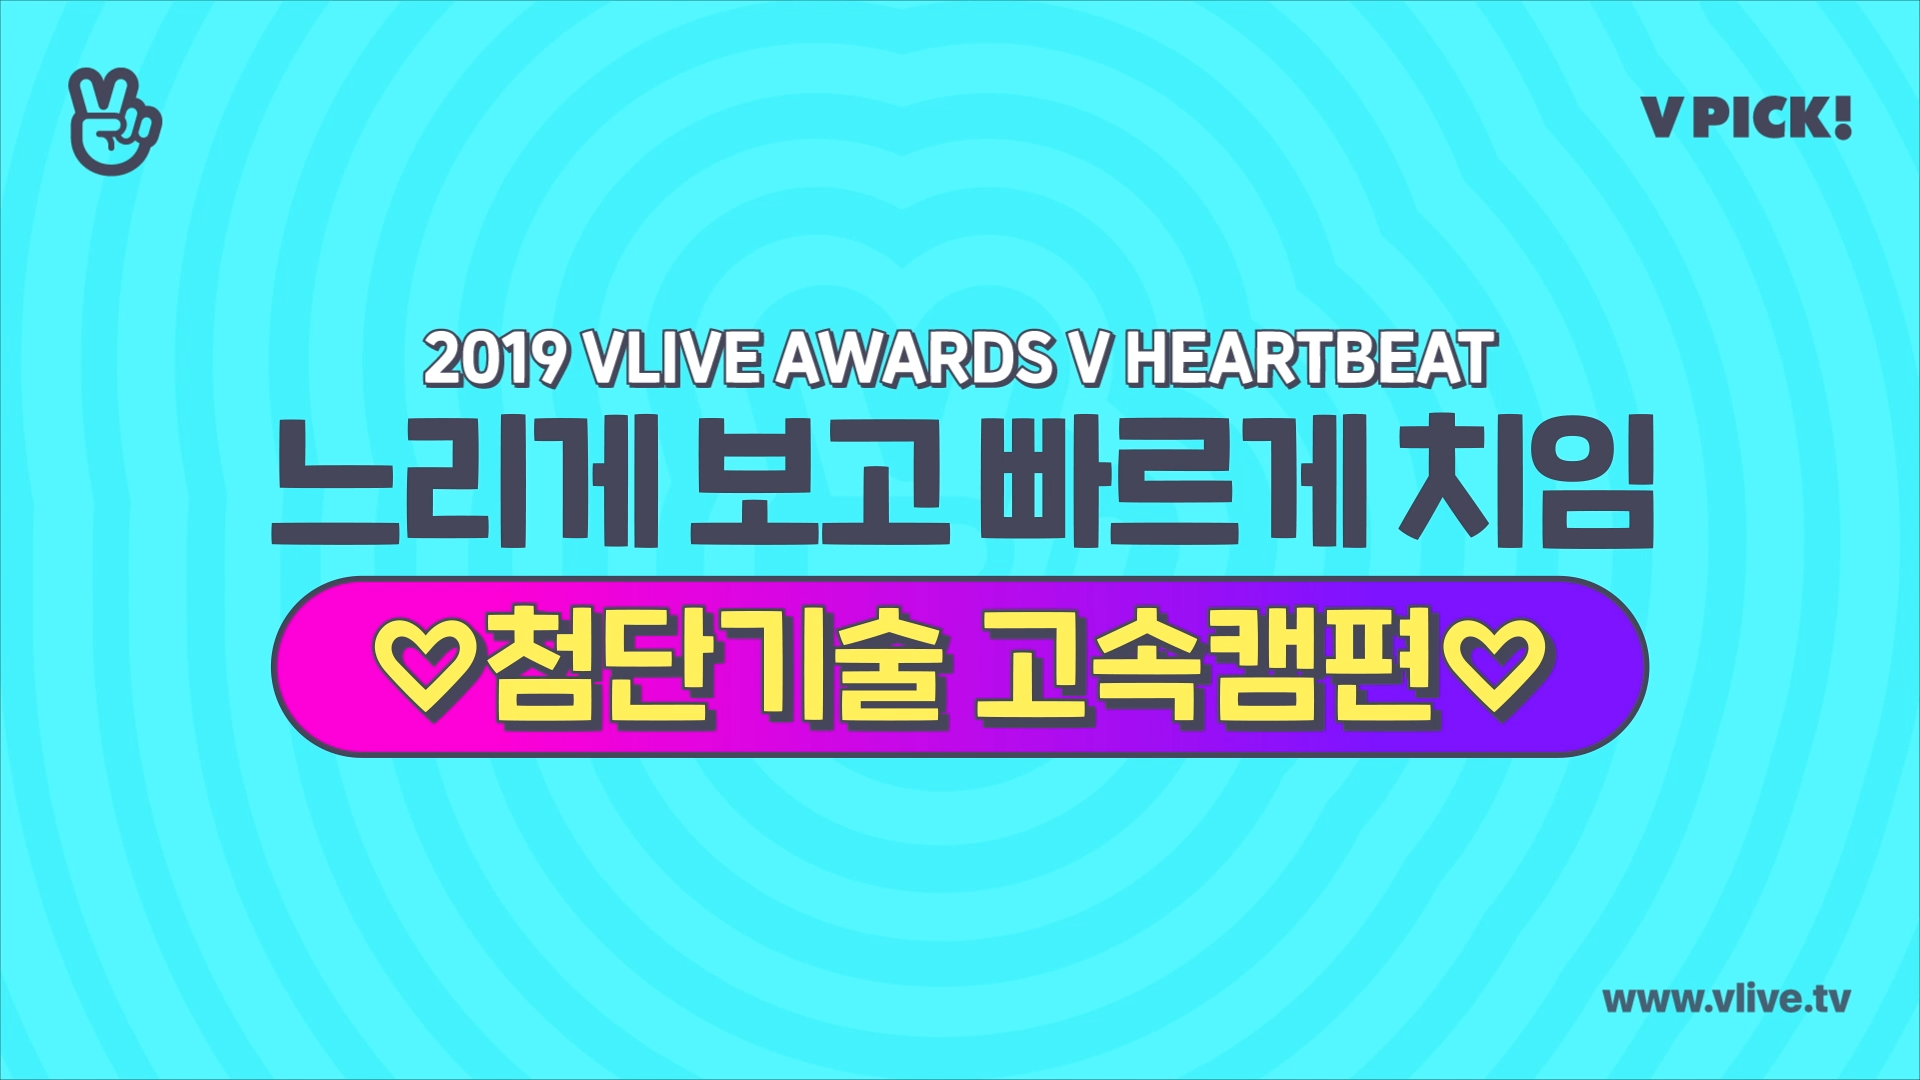 [V PICK!] 2019 V HEARTBEAT 하이라이트 ✨고속캠편✨ (2019 V HEARTBEAT PICK! 'HIGH SPEED CAM')